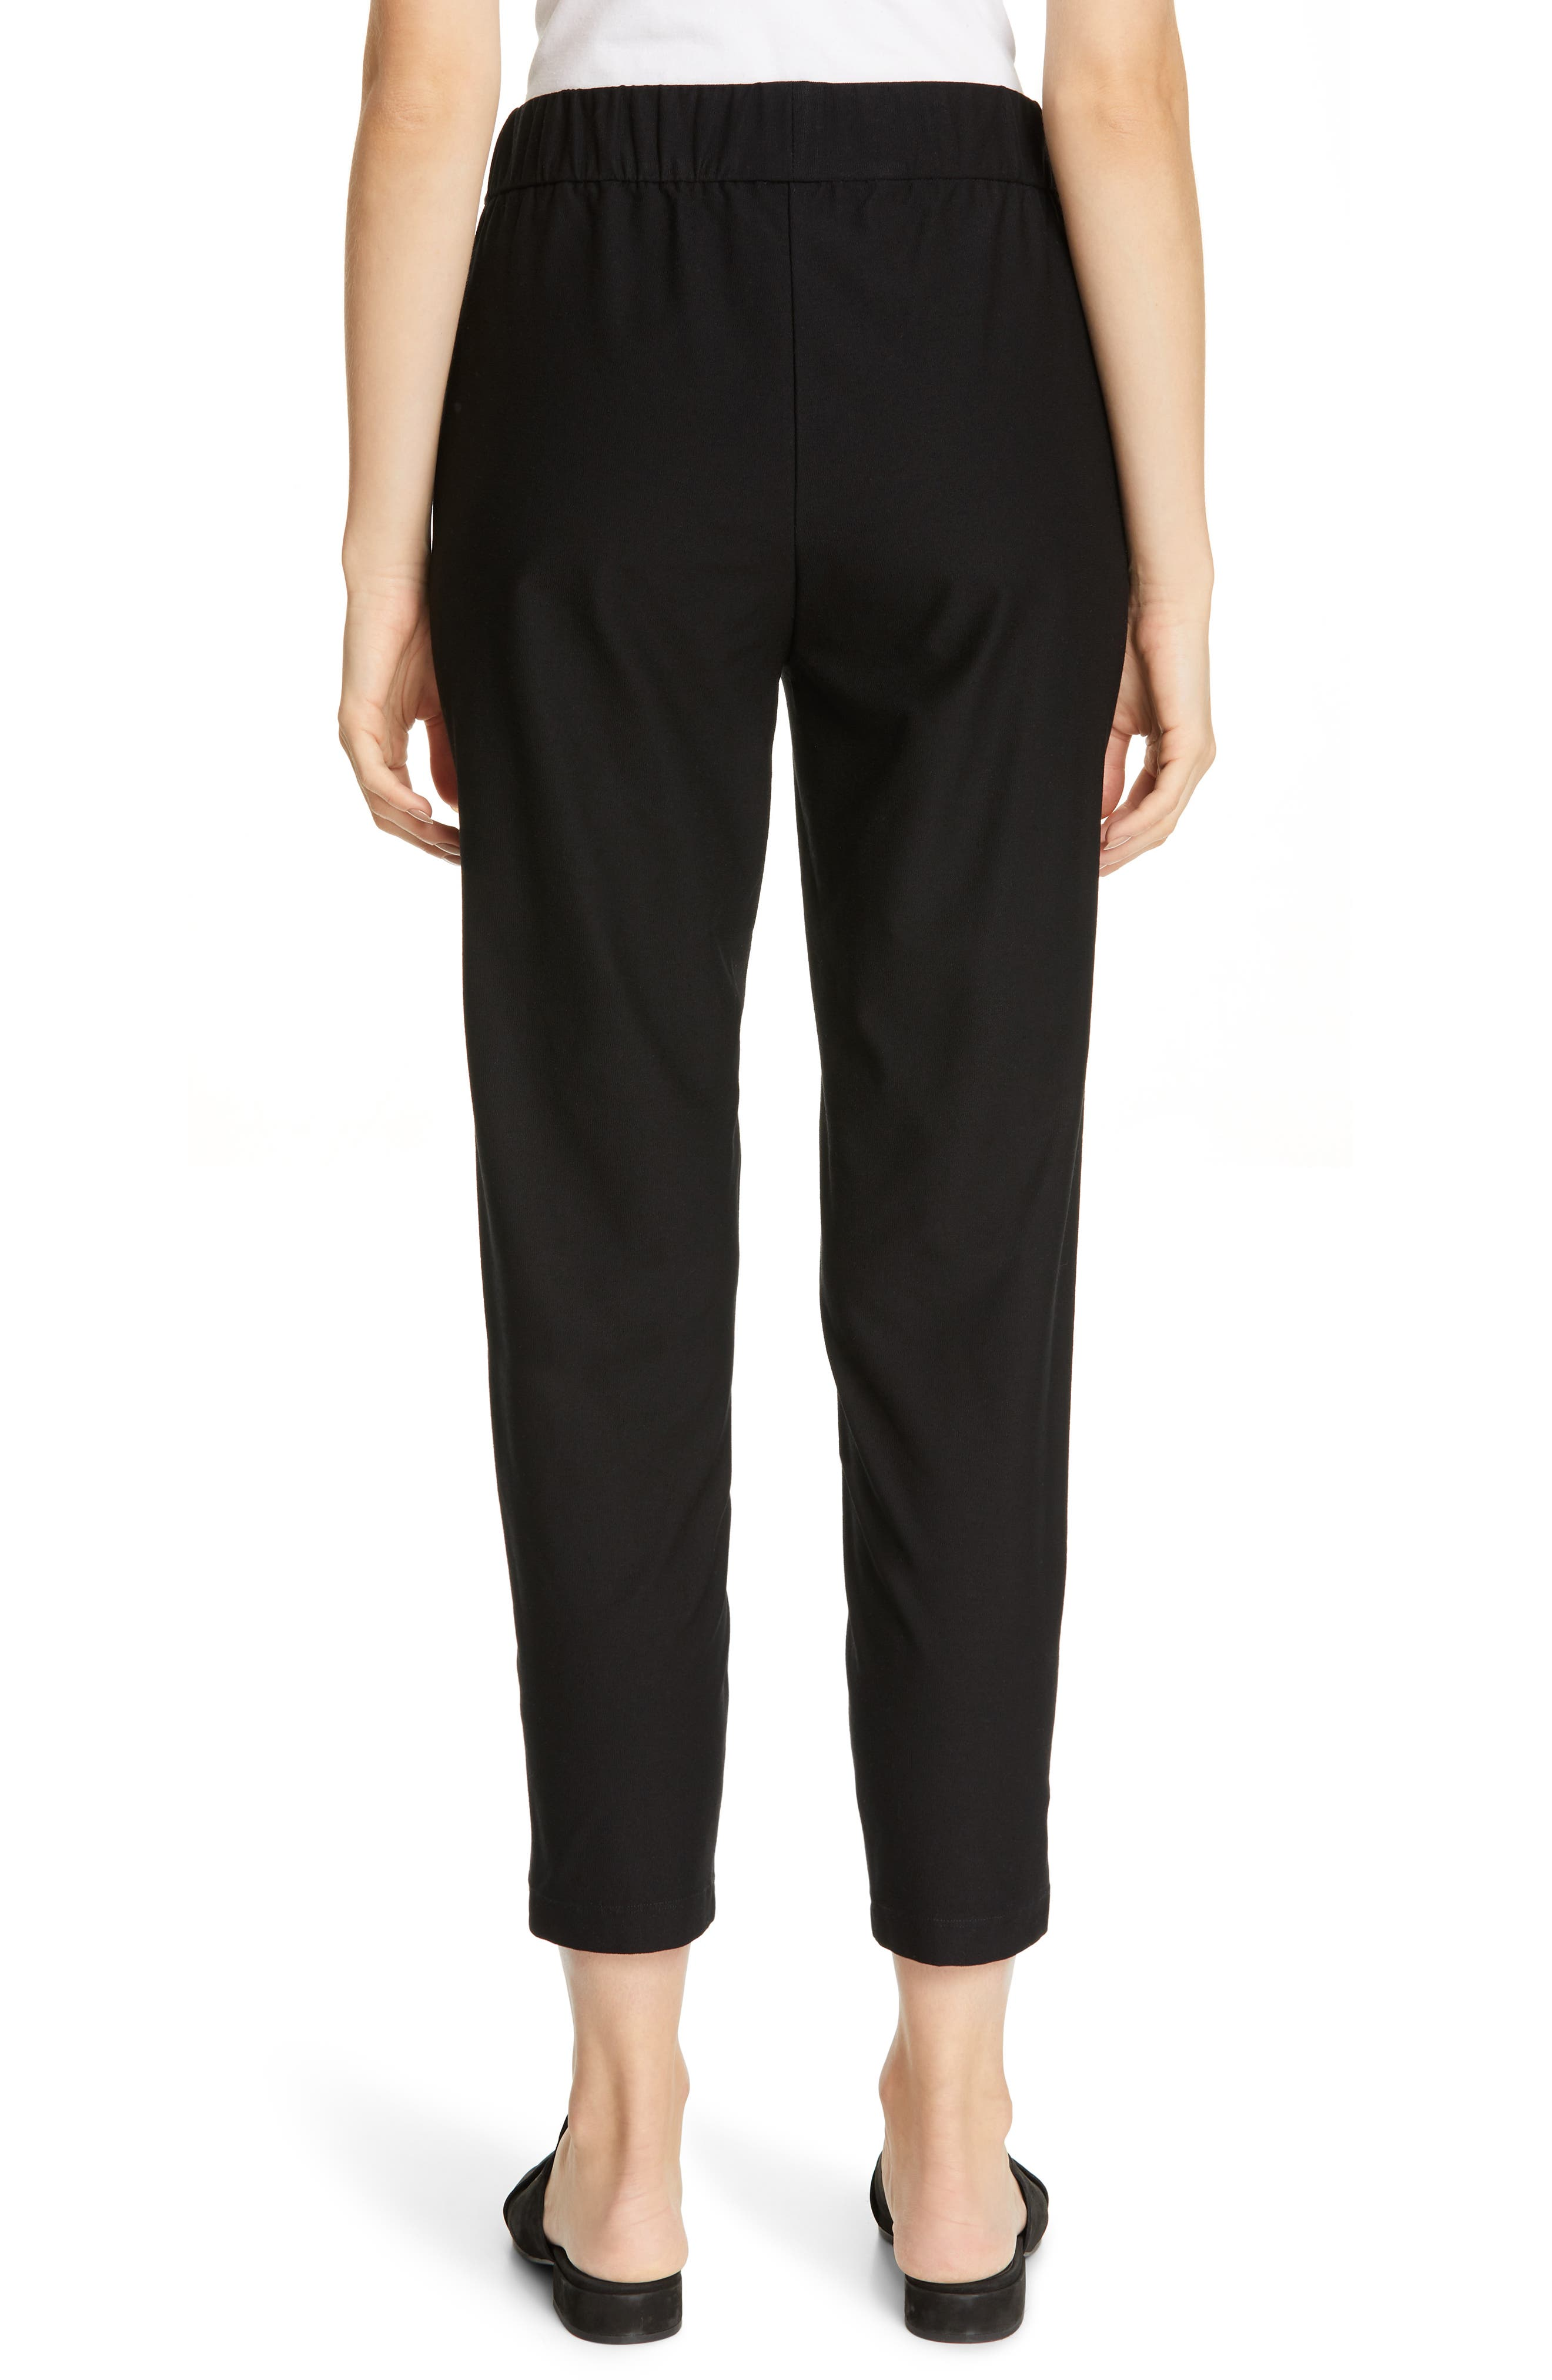 EILEEN FISHER, Tapered Ankle Pants, Alternate thumbnail 2, color, BLACK